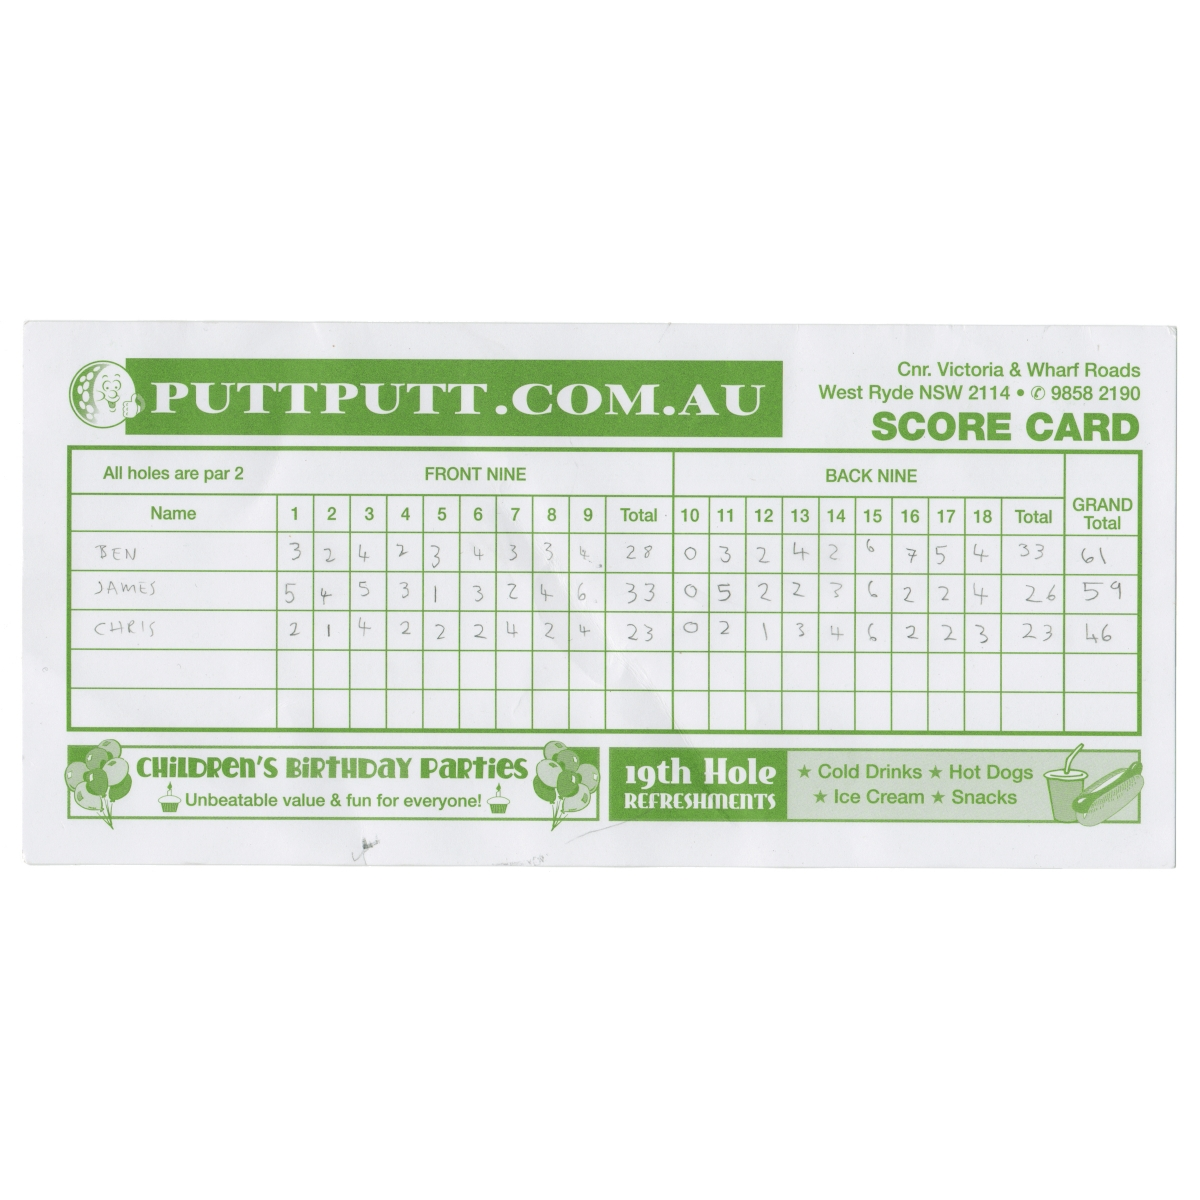 Put put golf score card.